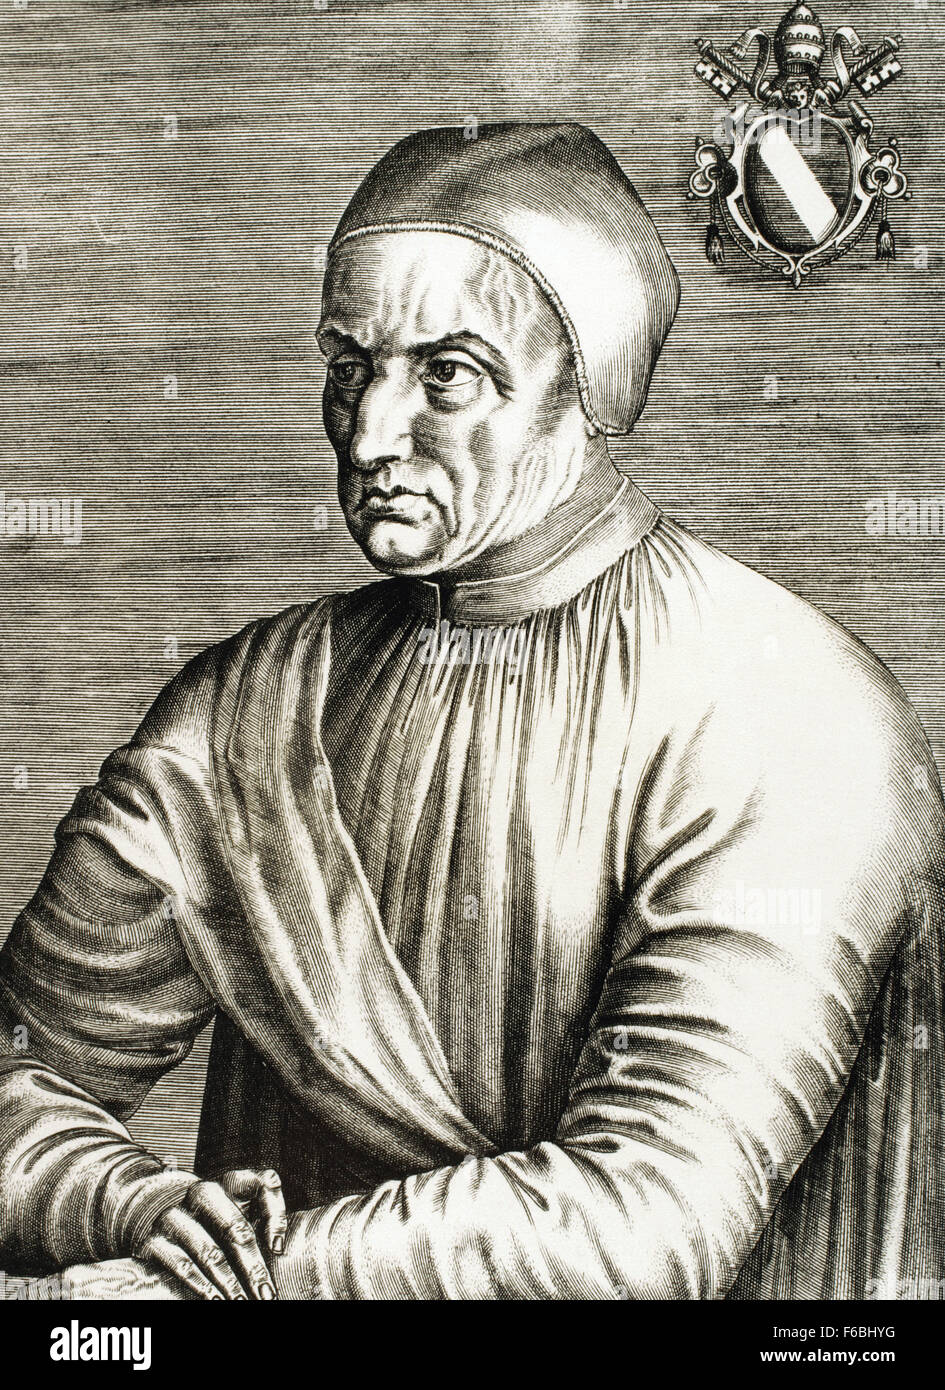 Pope Eugene IV (1383-1447). Born Gabriele Condulmer, was pope from  1431-1447. Portrait. Engraving.